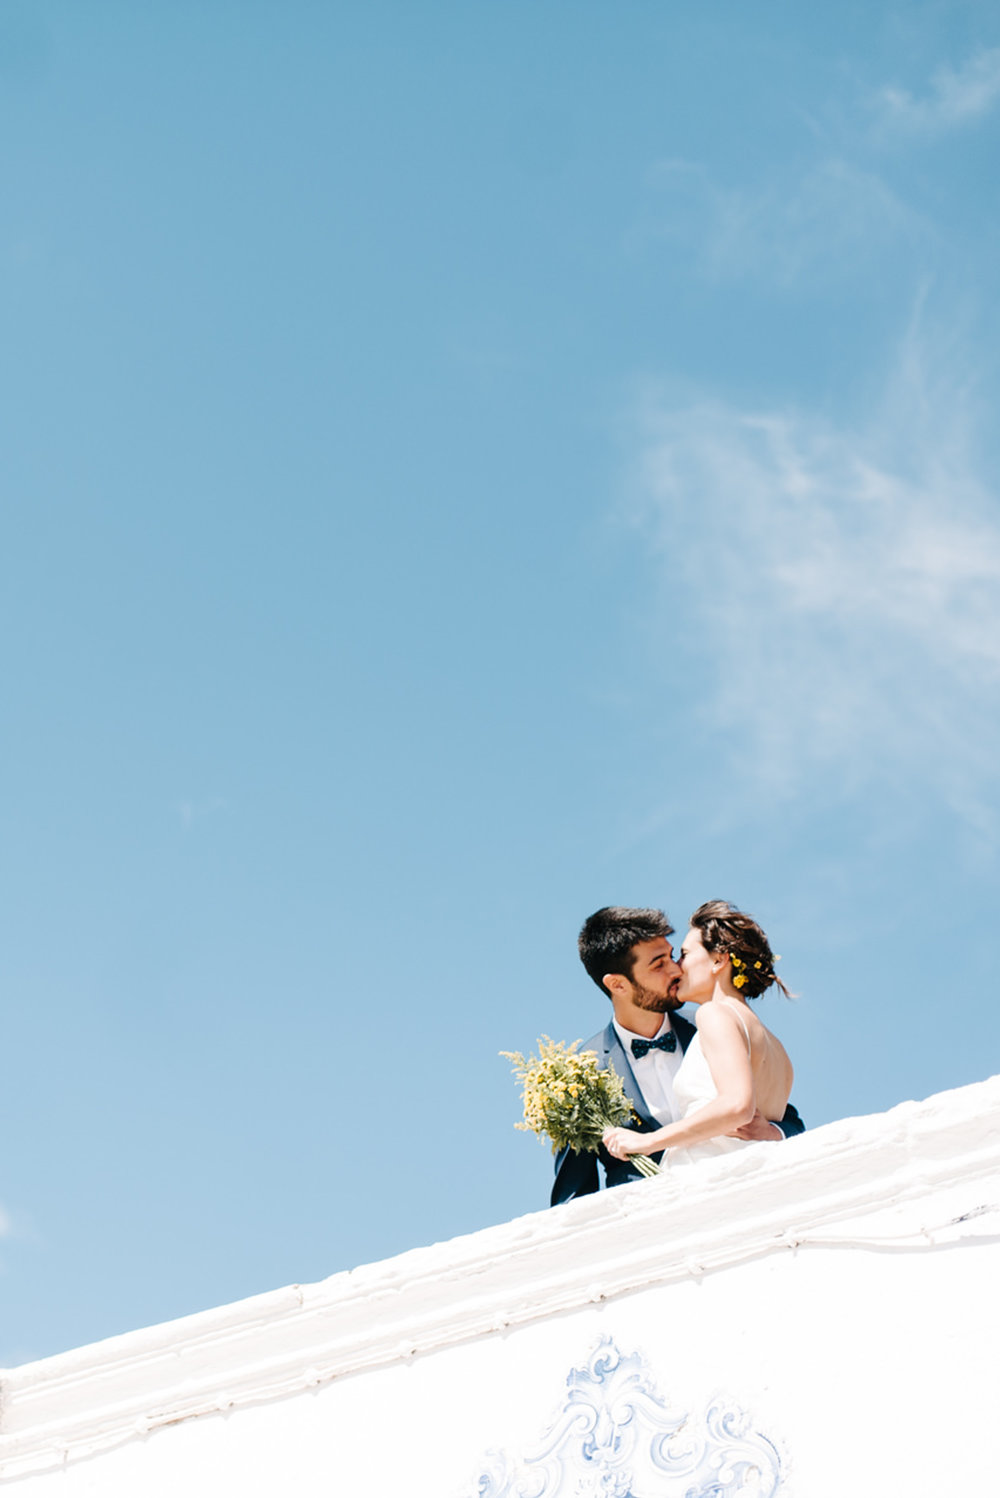 Wedding Photographer Spain Carla Bonnet.jpg